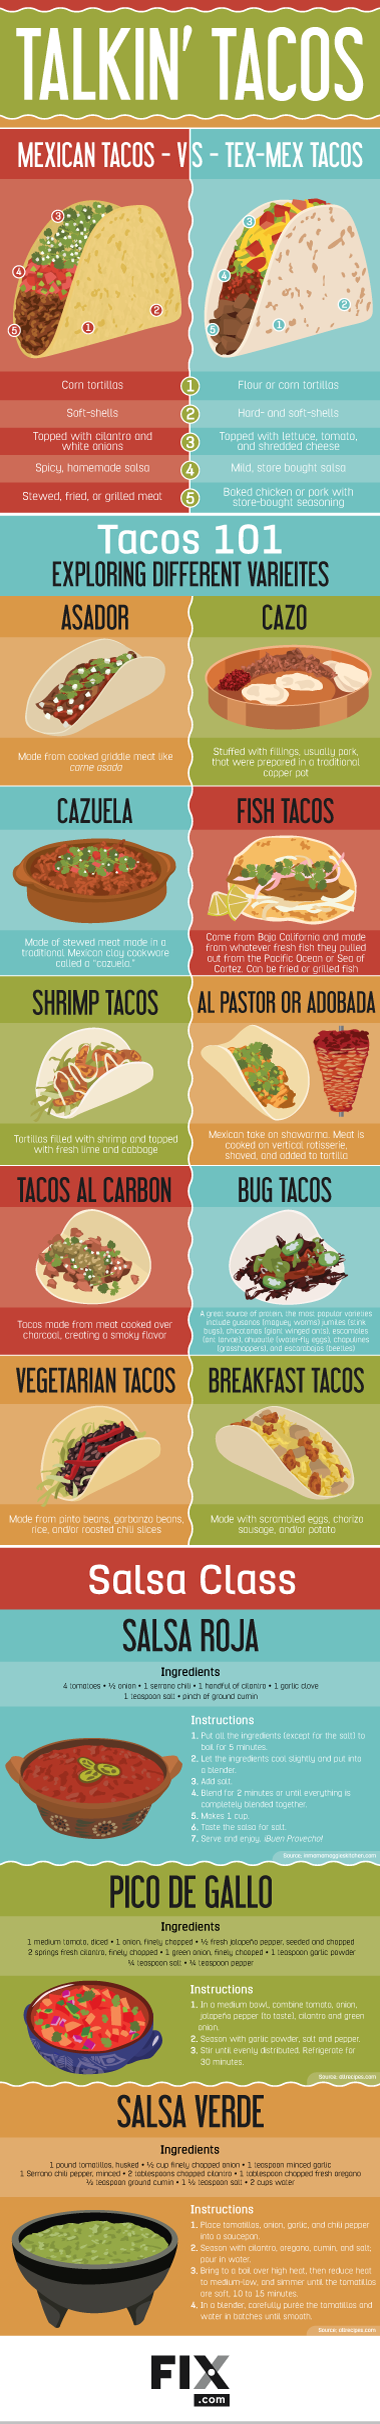 guide-to-authentic-tacos